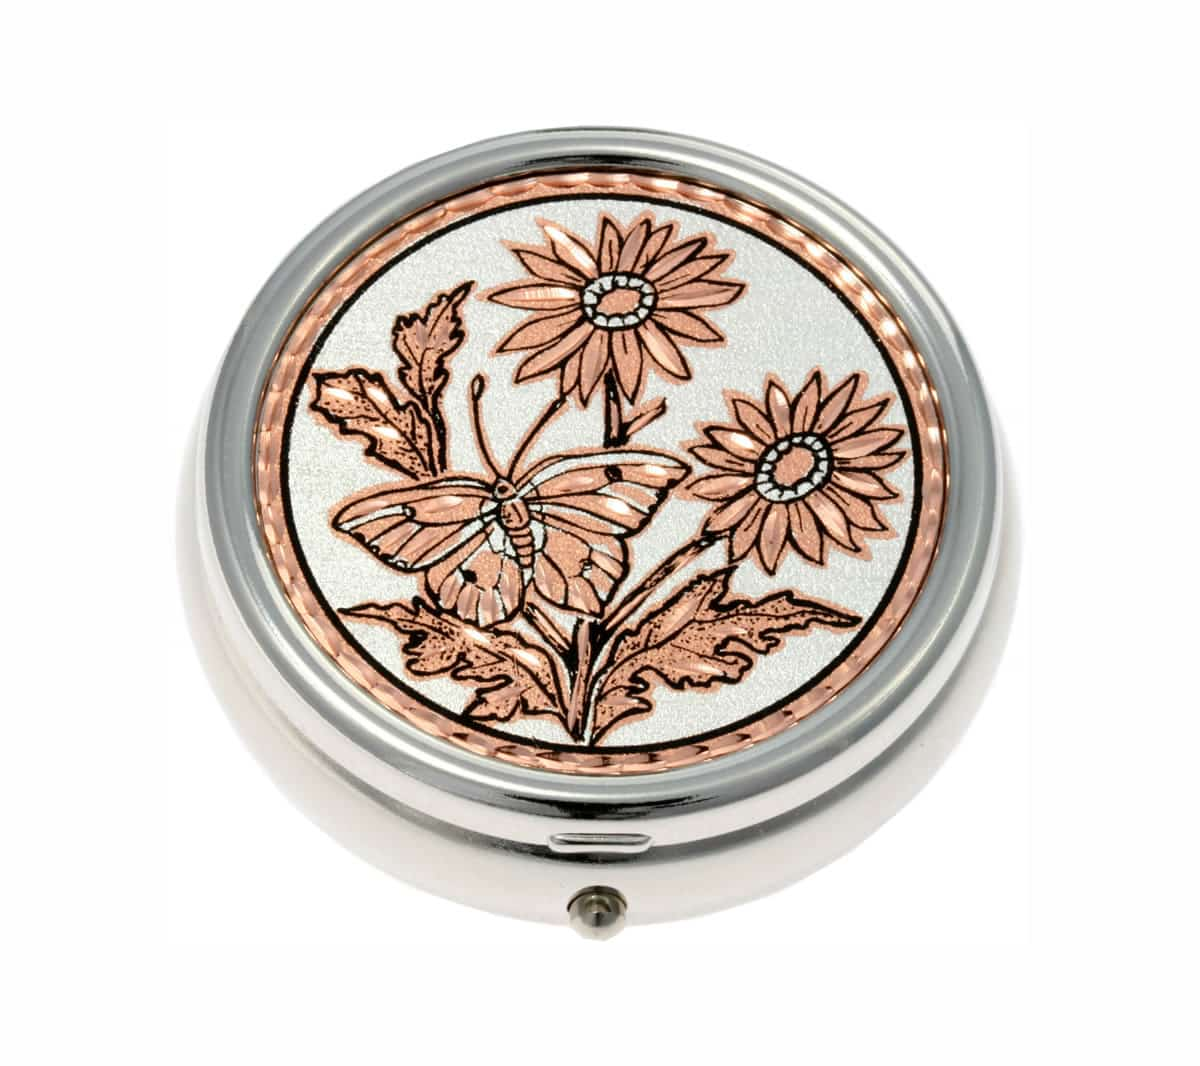 Purchase elegant butterfly handmade copper artwork embellished silver plated pill boxes